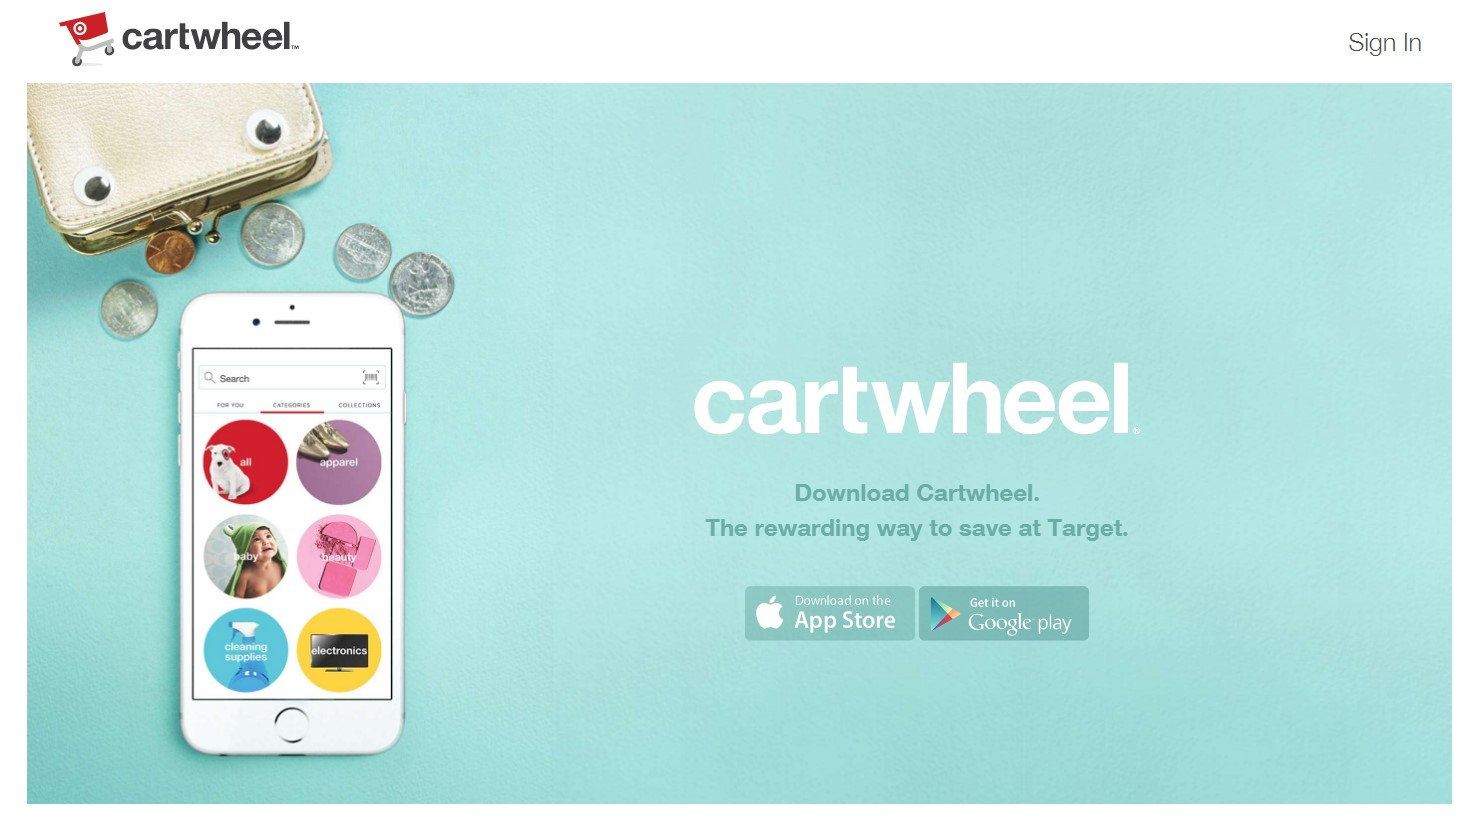 This is a great FREE tutorial on the Target Cartwheel app and how to use it! I am often asked what is Target Cartwheel, How does Target Cartwheel work, or I want to learn how to use Target Cartwheel.  In this post we will cover the Cartwheel app and everything you need to know to make Target Cartwheel work for you!